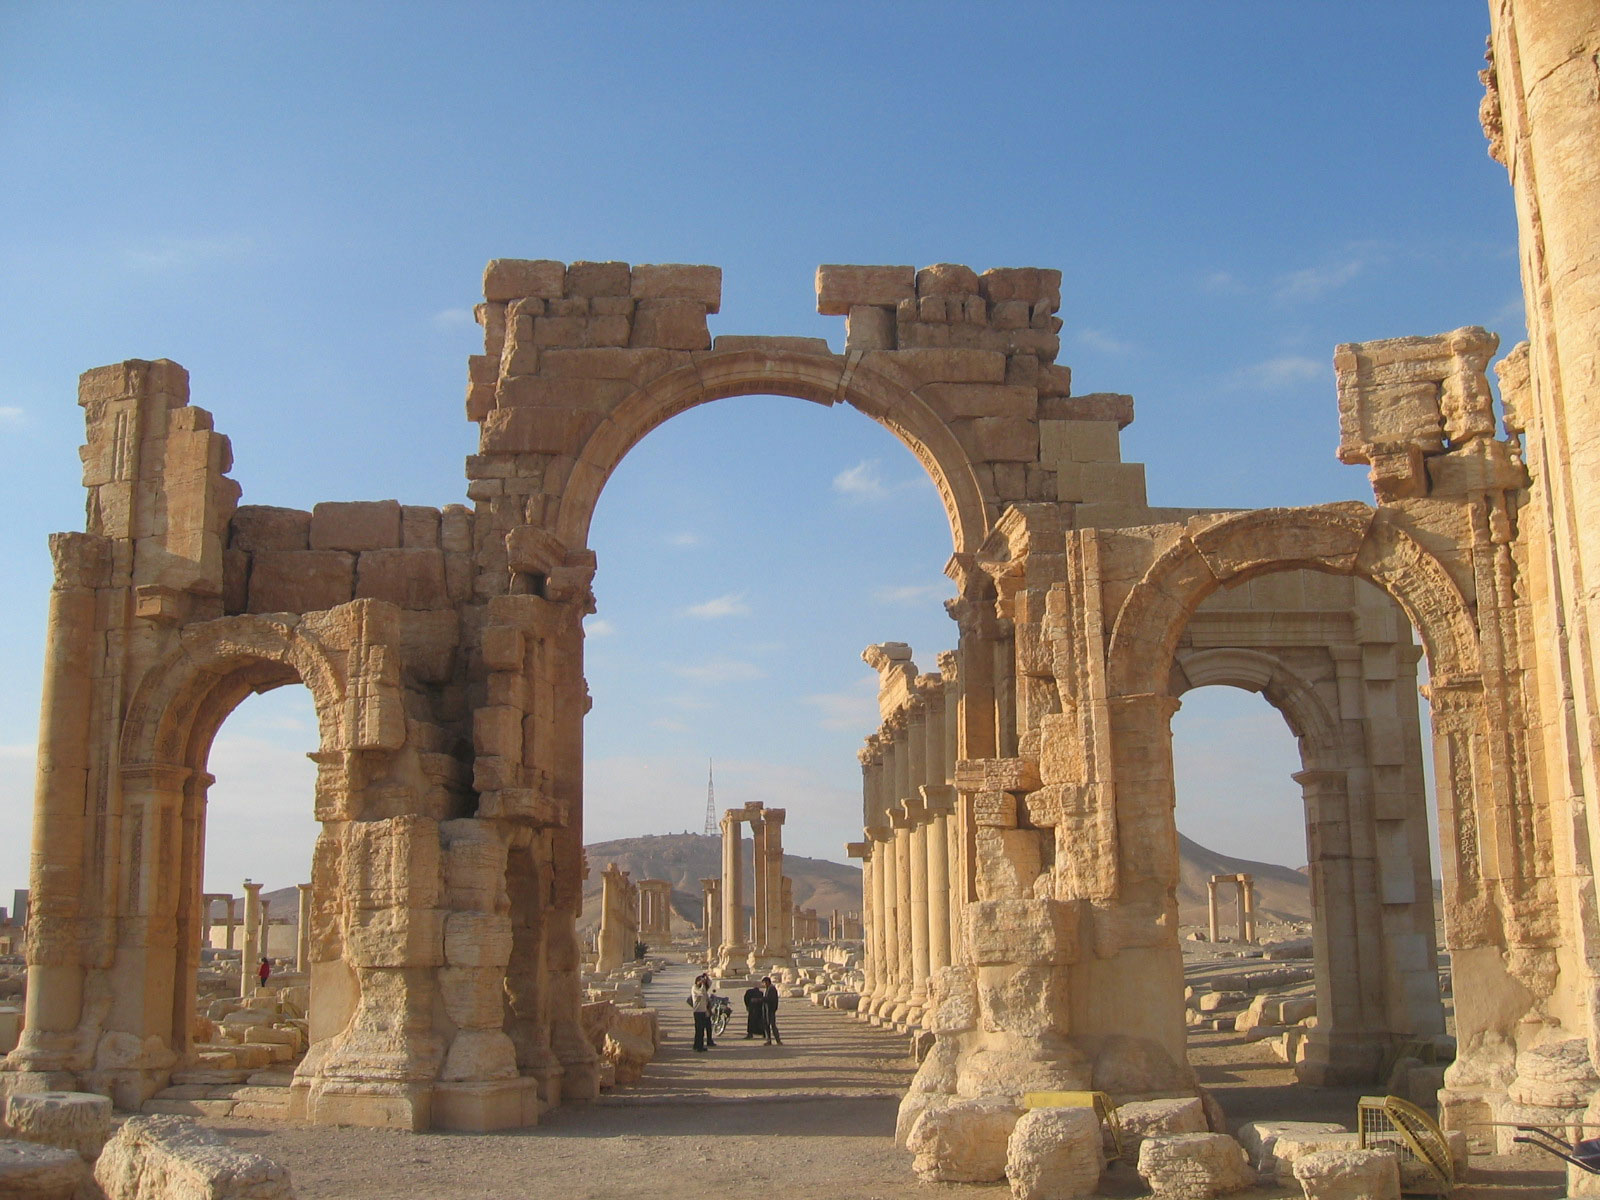 palmyra�s arch of triumph blown up by is